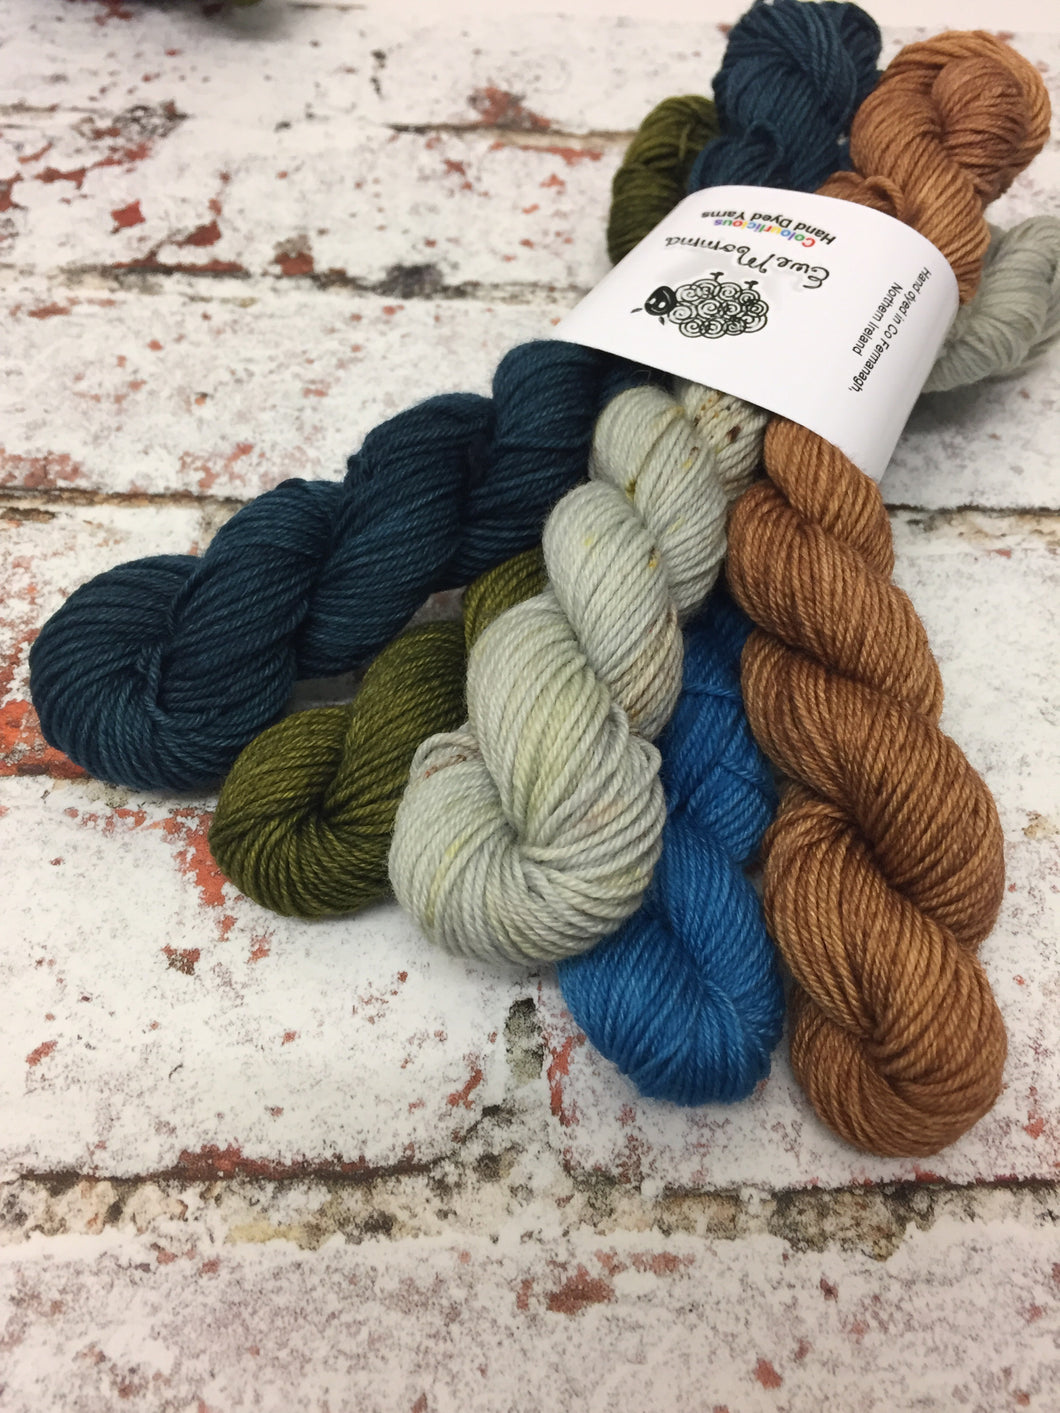 View from Cuilcagh Minis Sock Set, Superwash Bluefaced Leicester, 100g